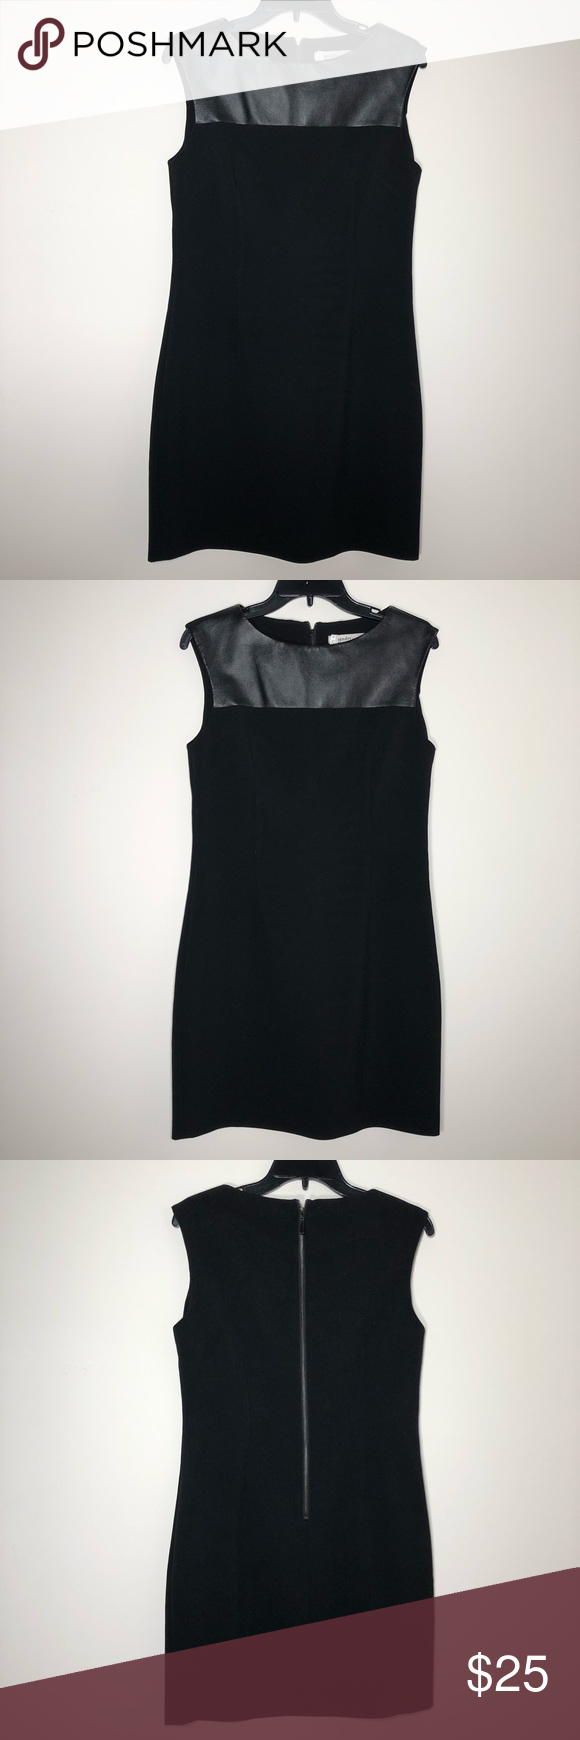 Laundry by Design Black Dress with Faux Leather Laundry by Design Black Dress with Faux Leather  Condition: Good, no stains. Small hole in faux leather (very small) and repaired loose stitching under armpit. See photos.  Measurements: see photos   Fabric: see photos  #1192 Laundry by Design Dresses